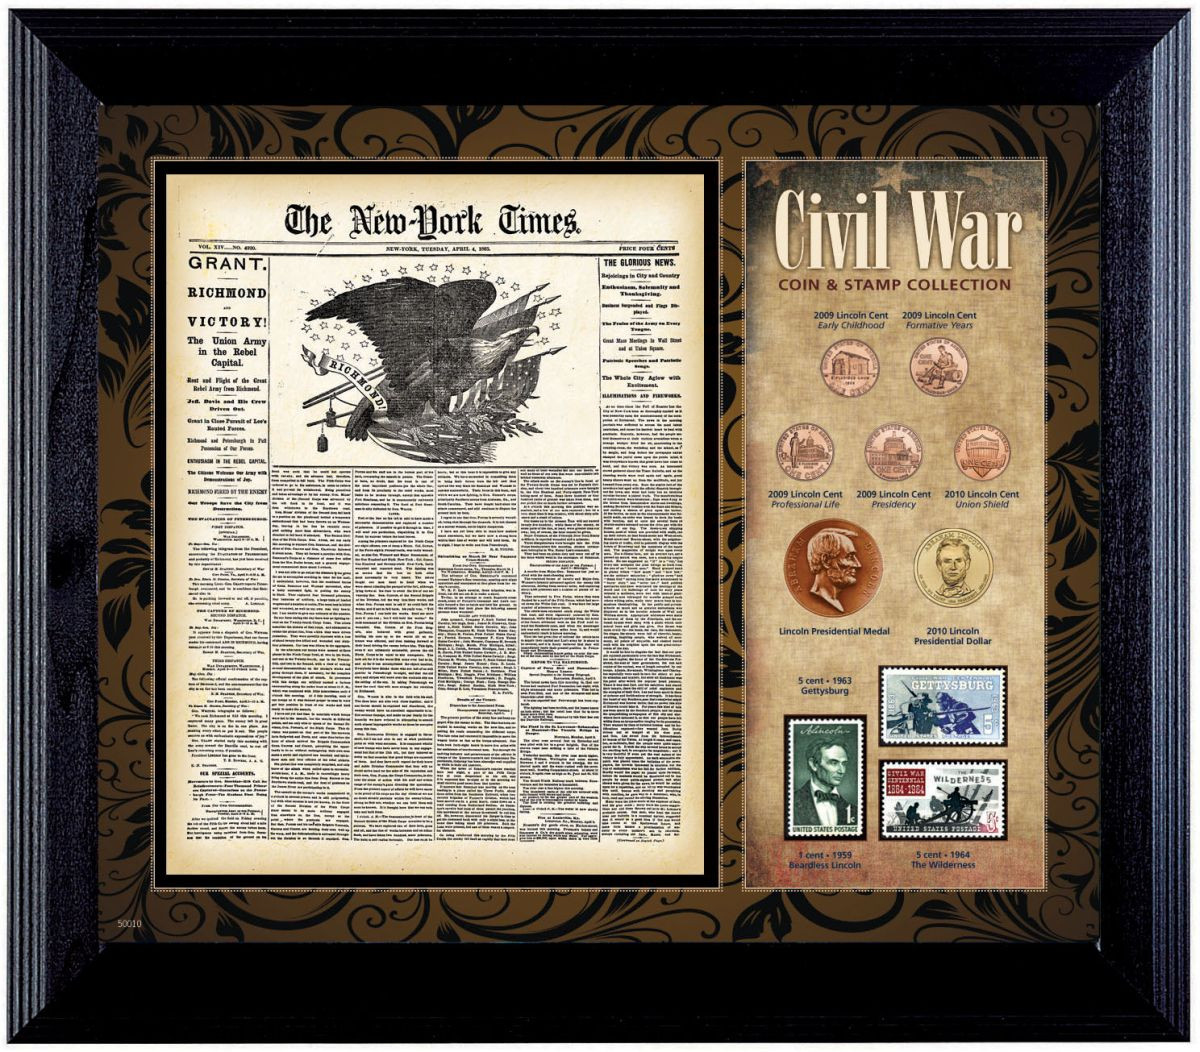 Collectors New York Times Civil War Coin Stamp Collection Framed